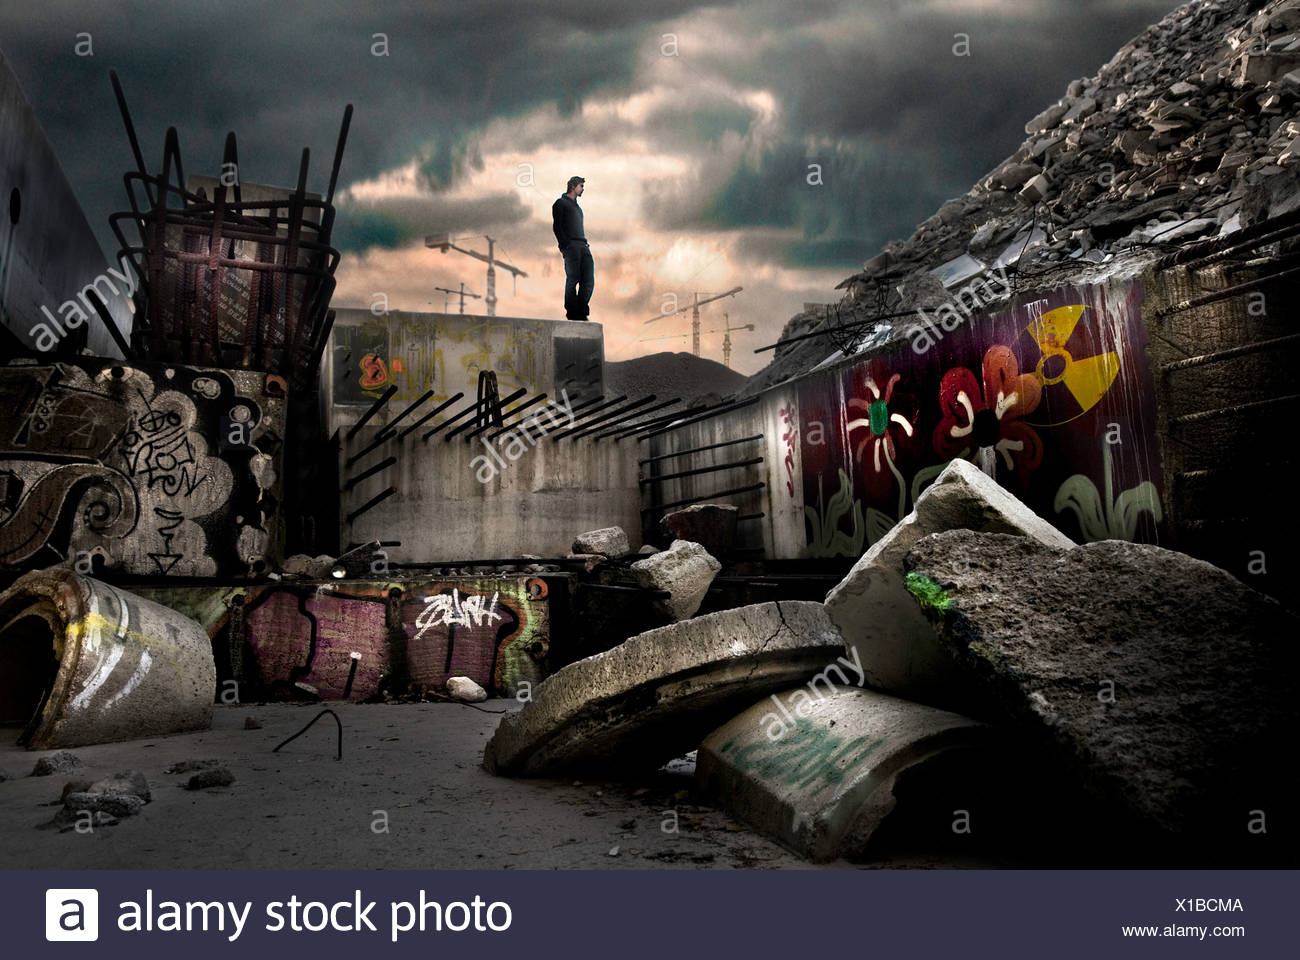 Young male figure standing on concrete block by rubbish tip - Stock Image